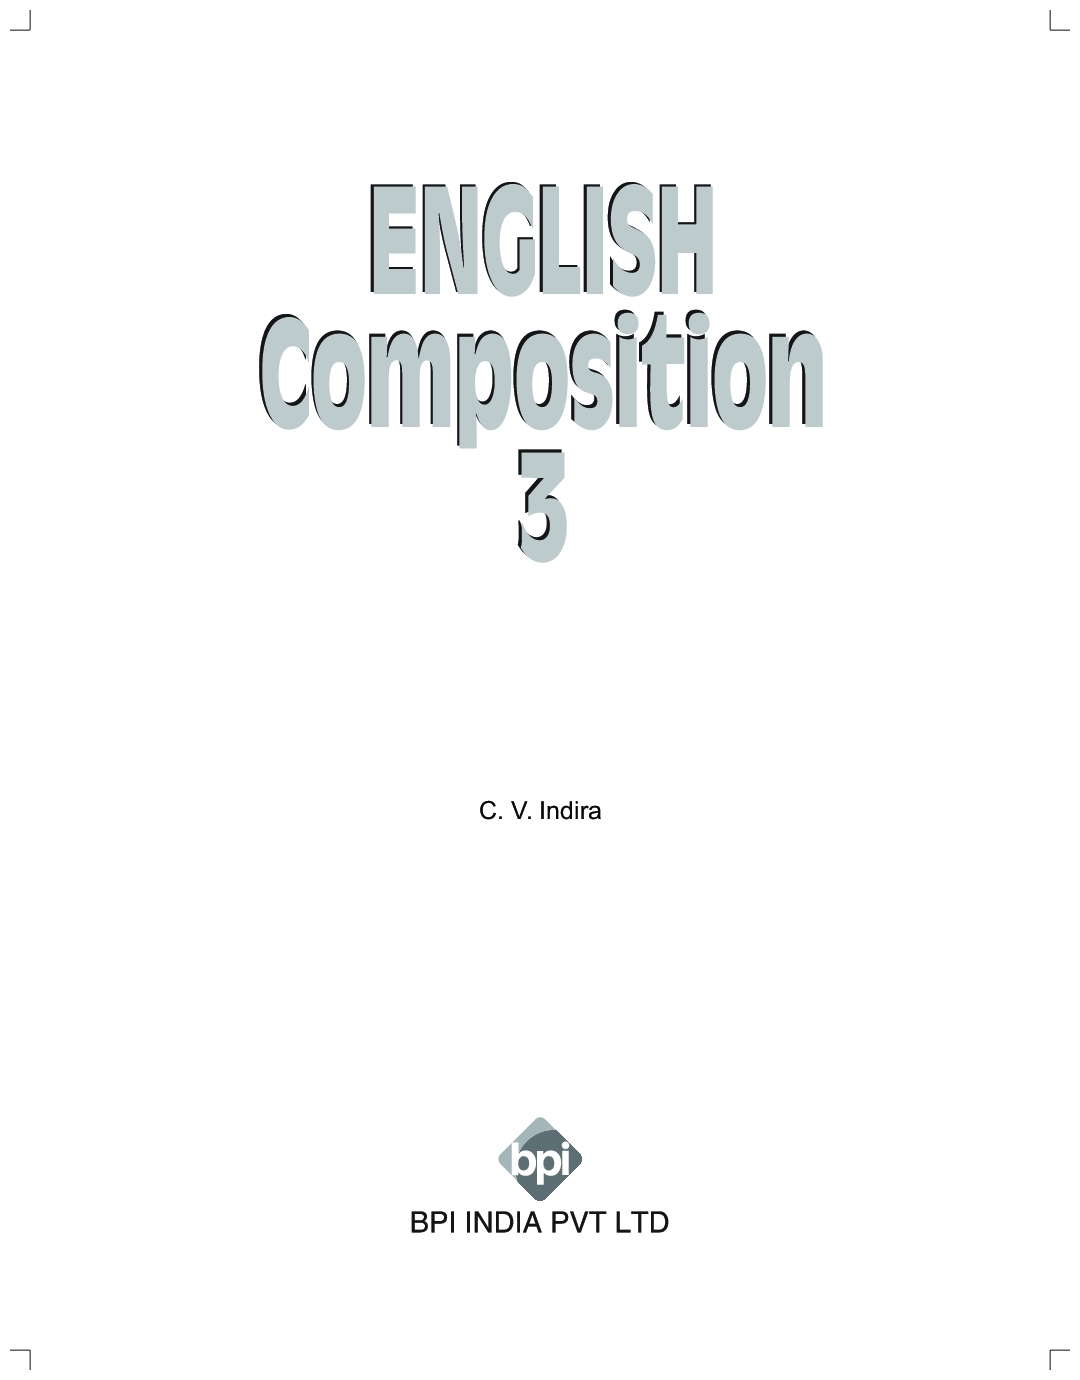 English Composition - 3 - Page 2